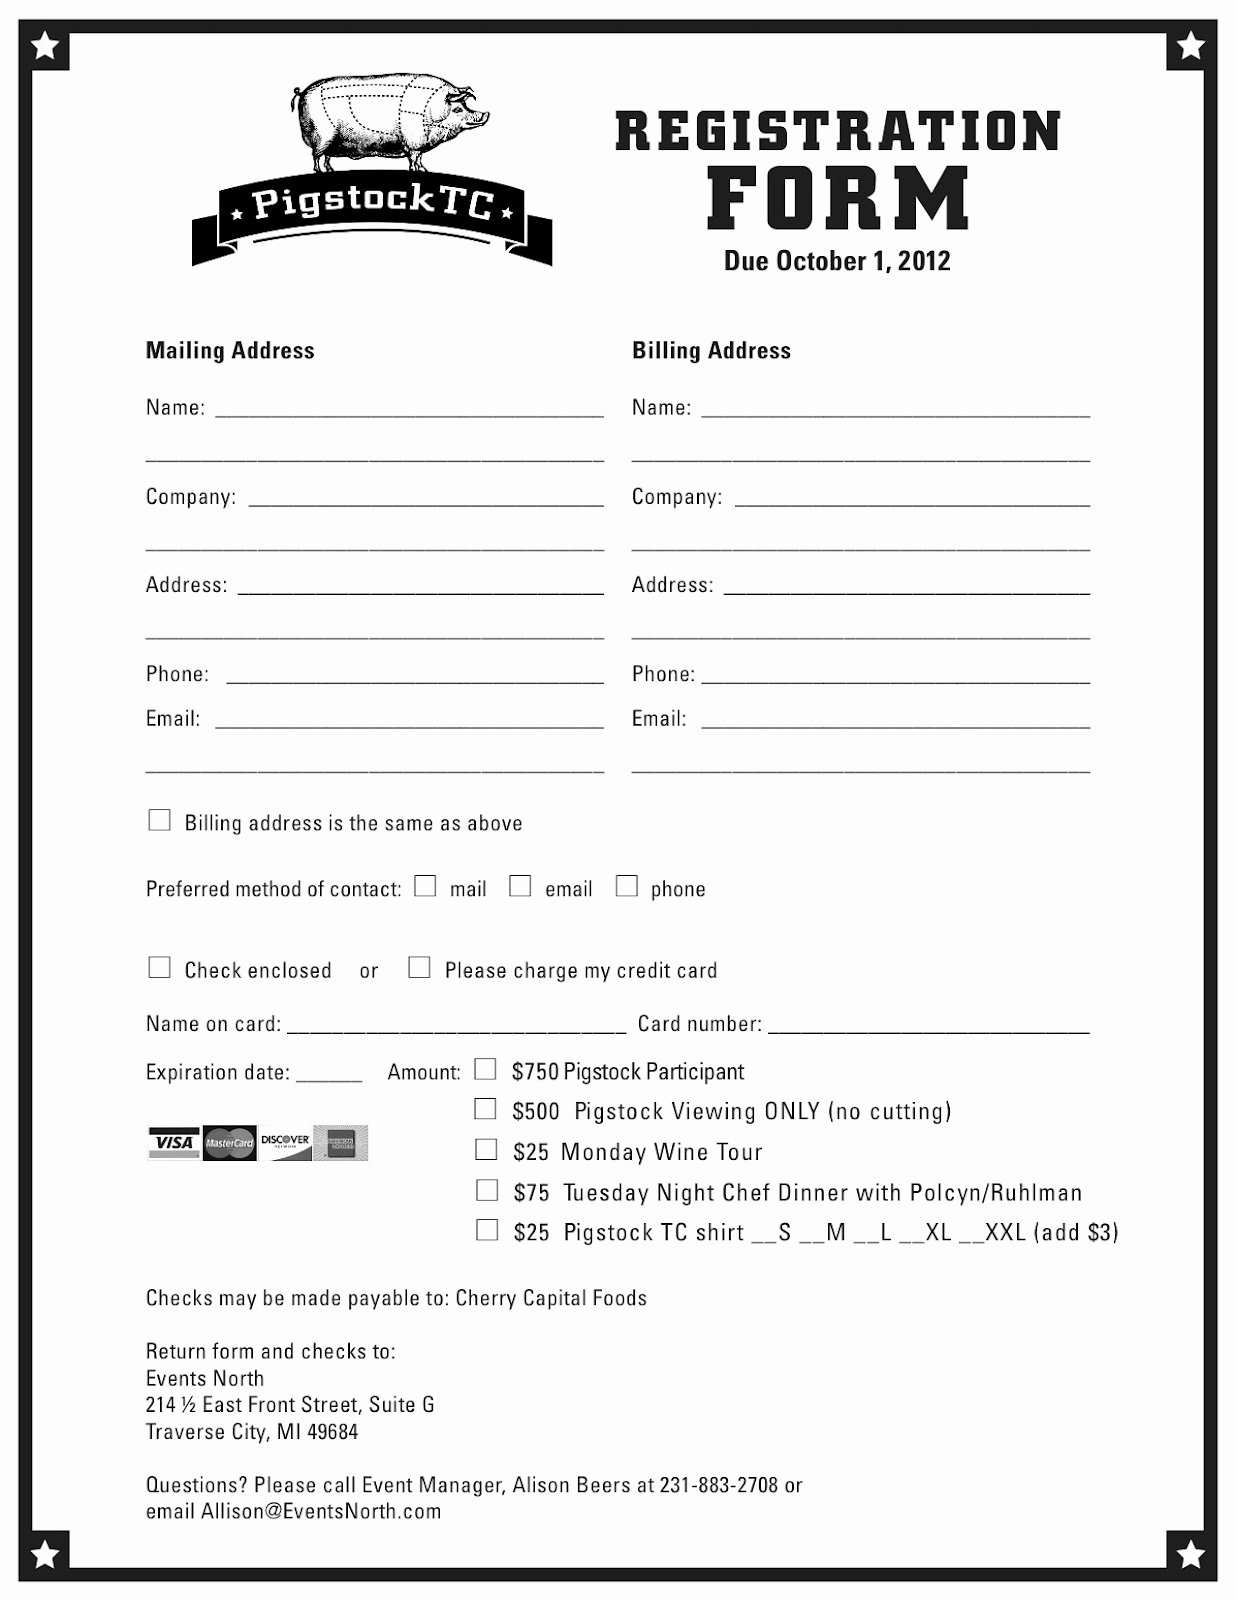 Printable Registration form Template Beautiful Pigstocktc 2012 Pigstocktc Program Schedule & Registration